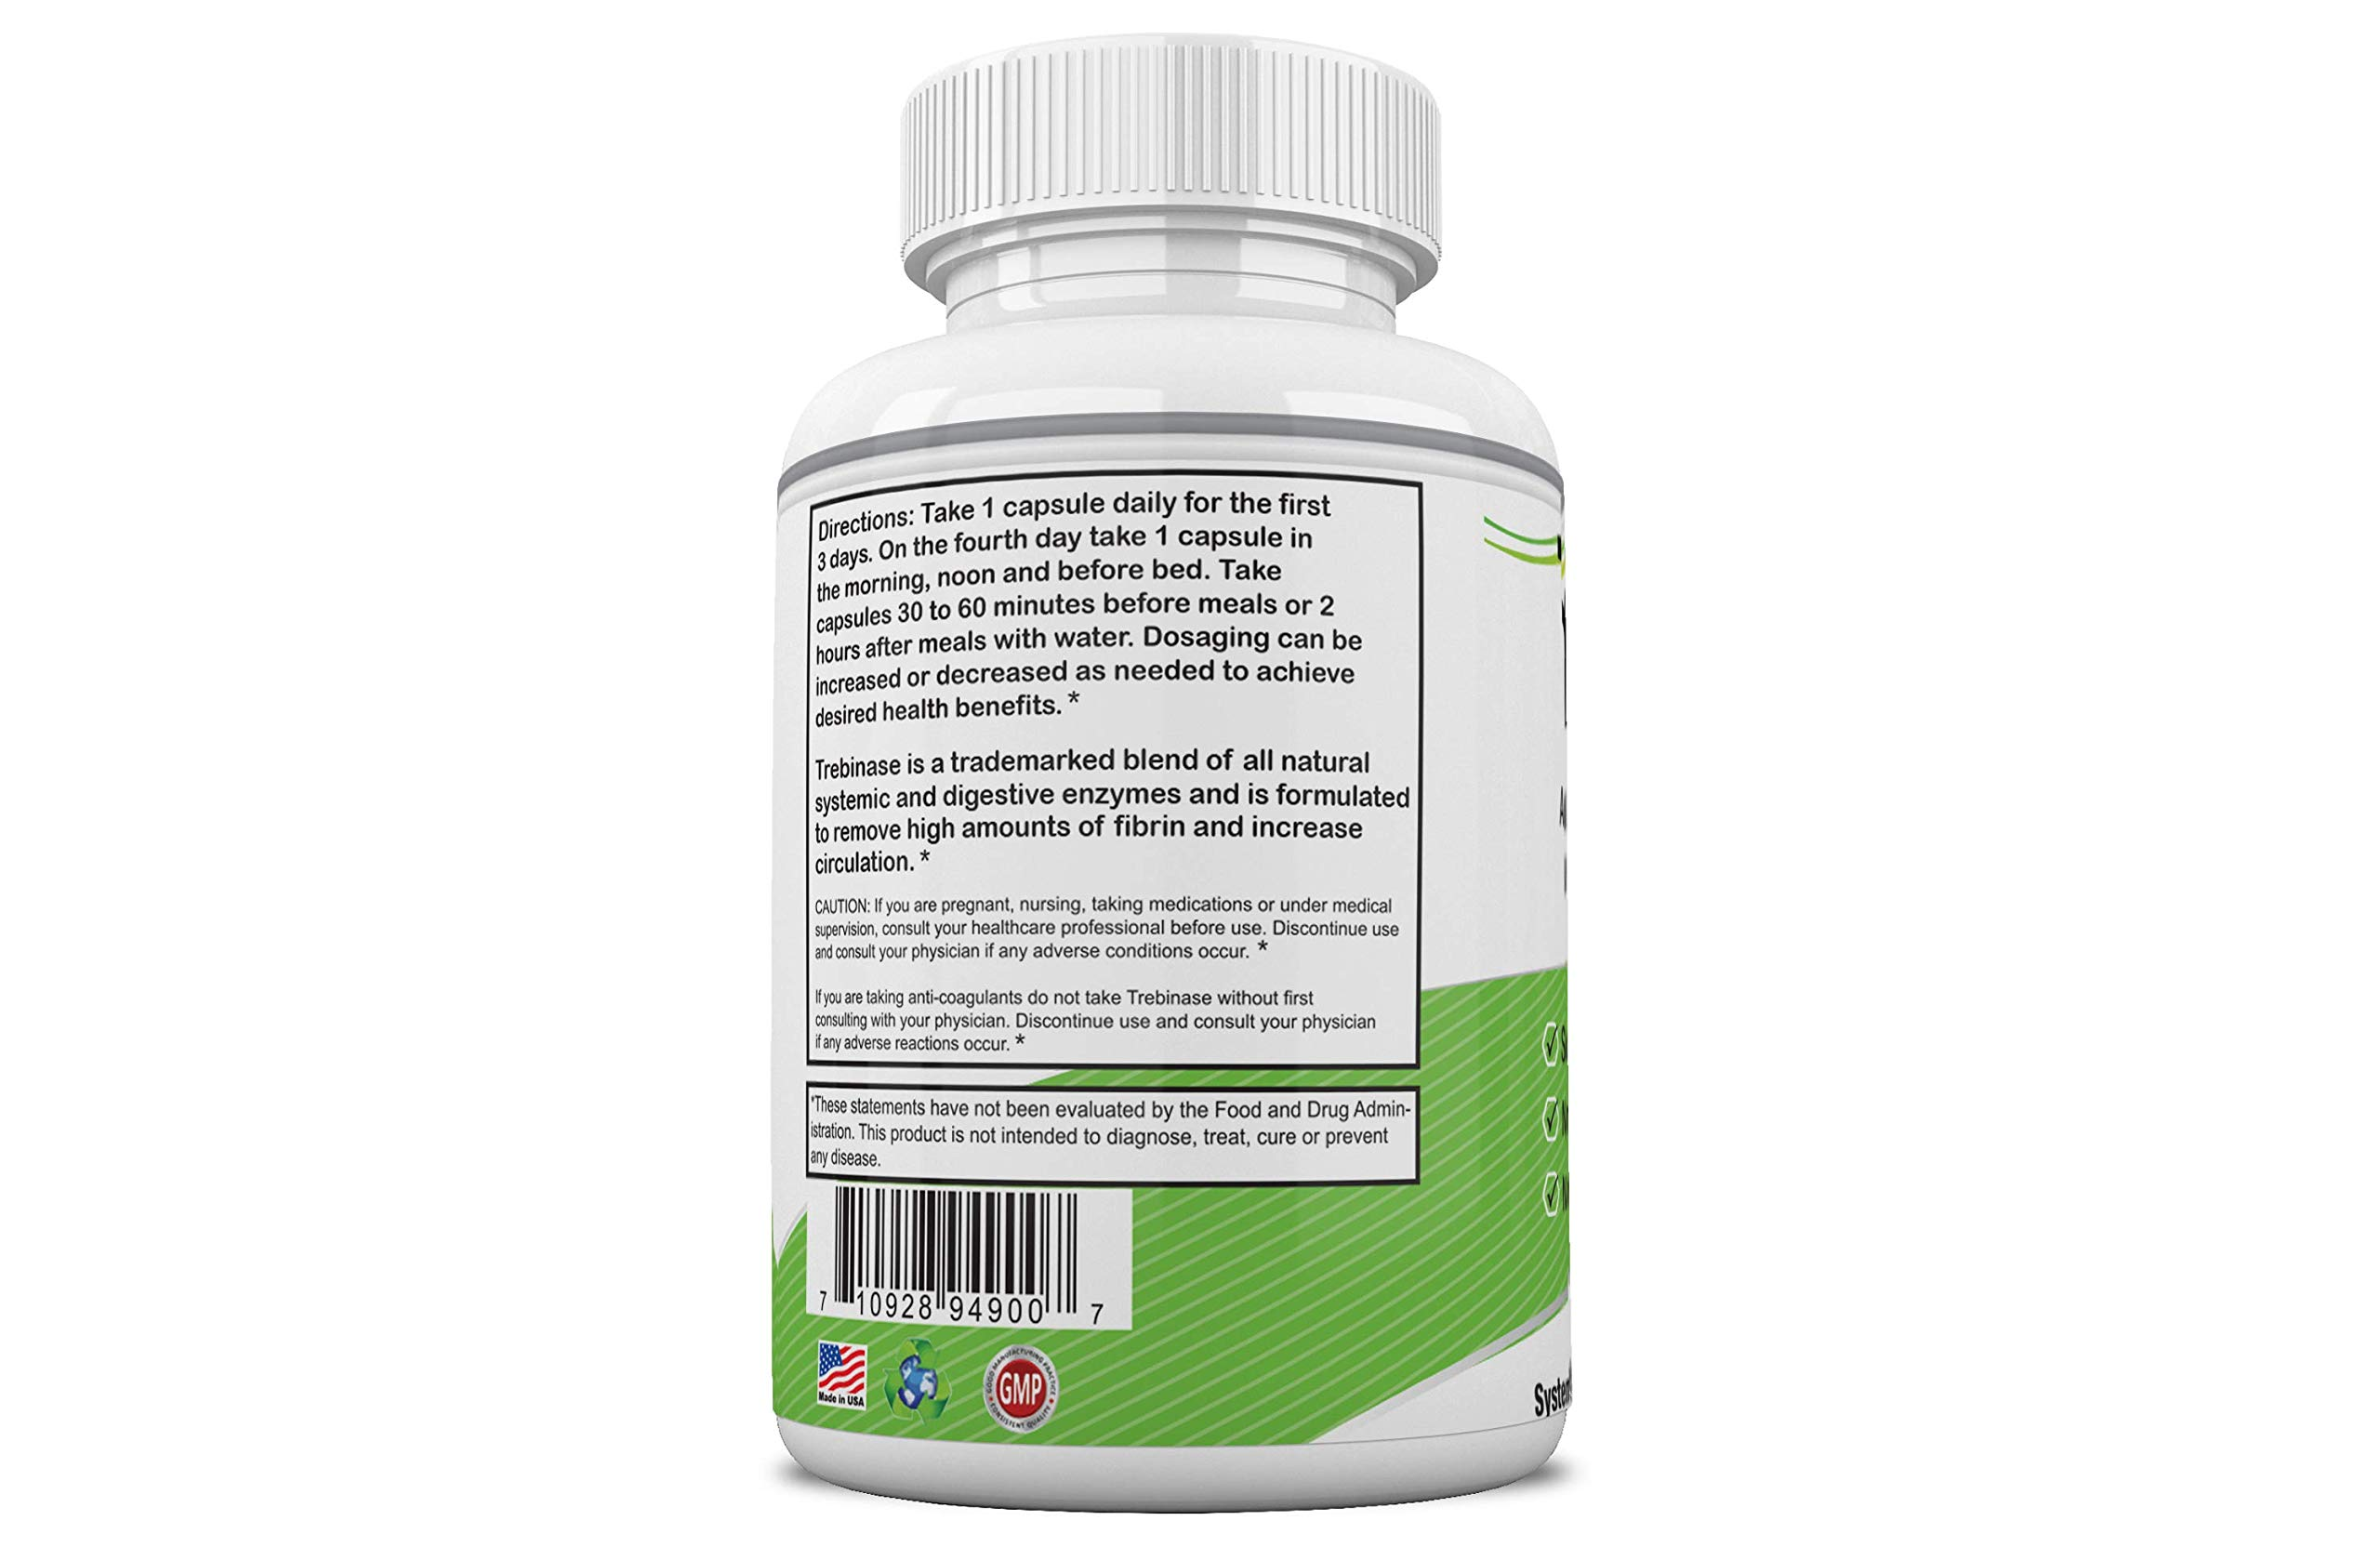 Extra Strength Scar Tissue Package (Limited Offer) Dissolve Scar Tissue  Quickly - Highly Potent Scar Tissue Dissolving Enzyme Blend - Serrapeptase,